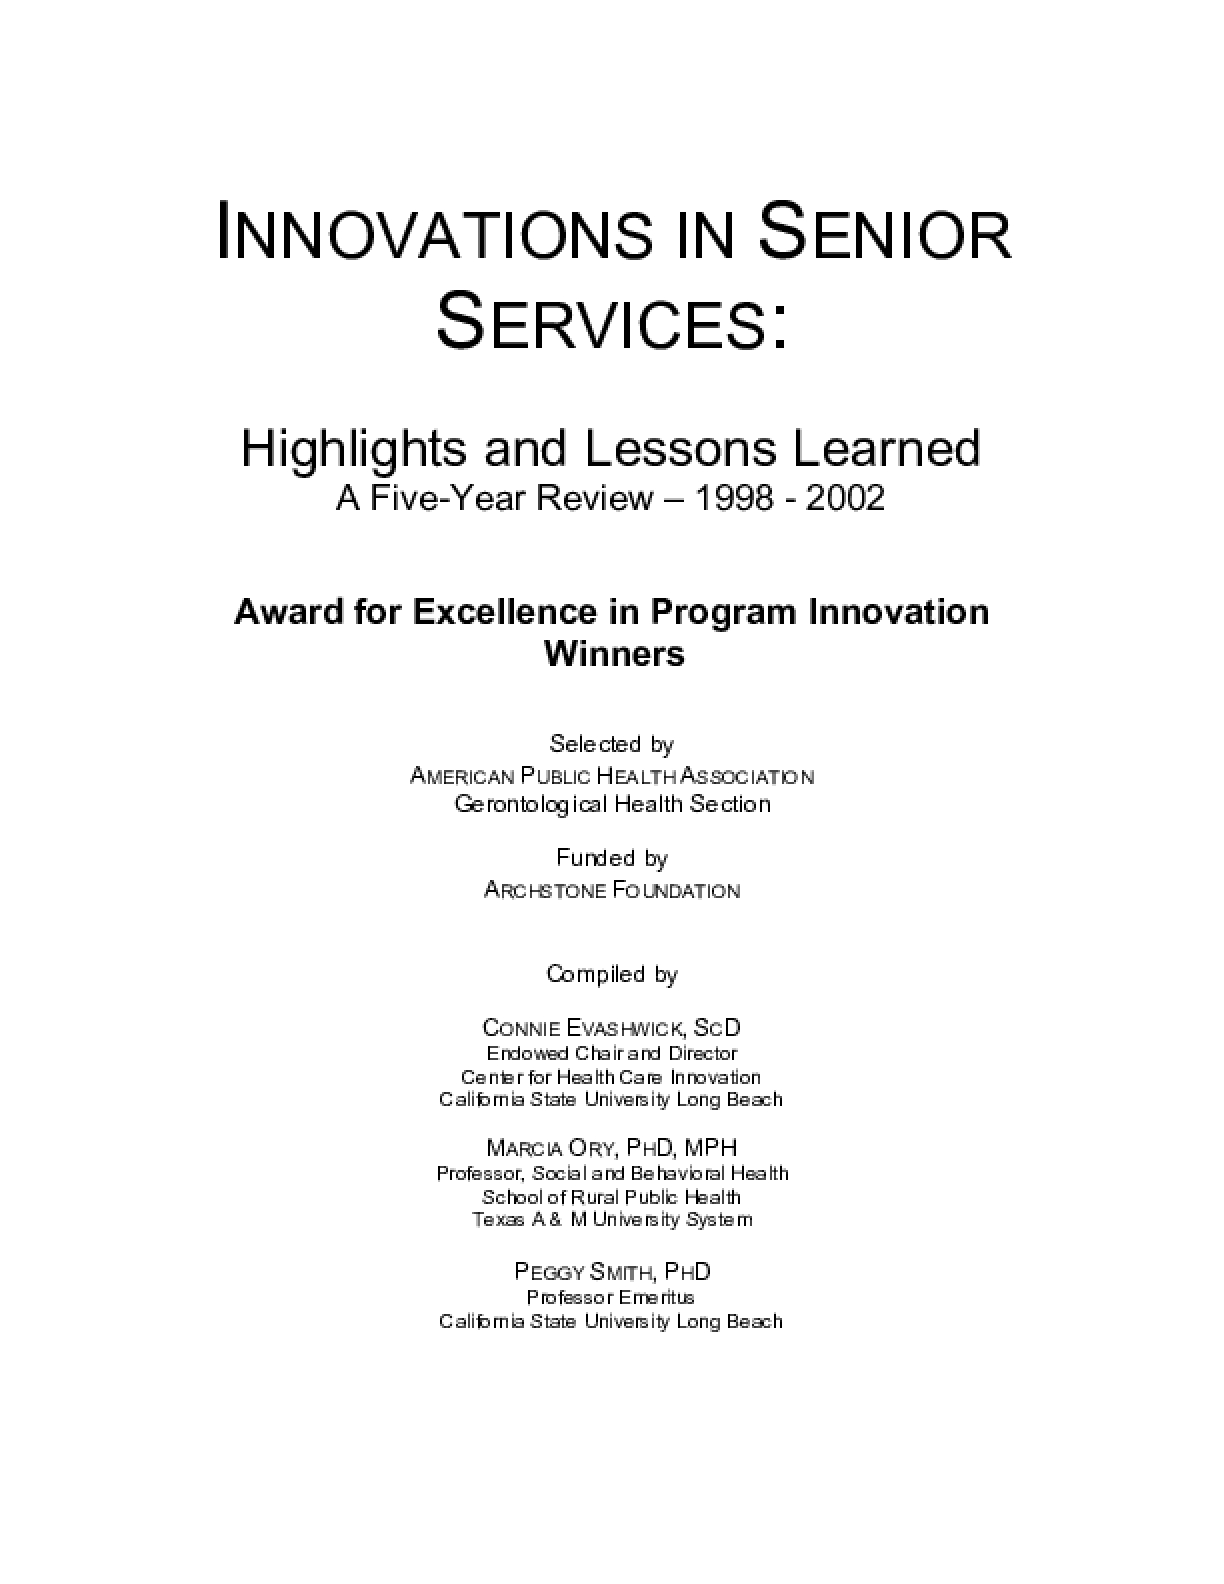 Innovations in Senior Services: Highlights and Lessons Learned: A Five Year Review 1998-2002